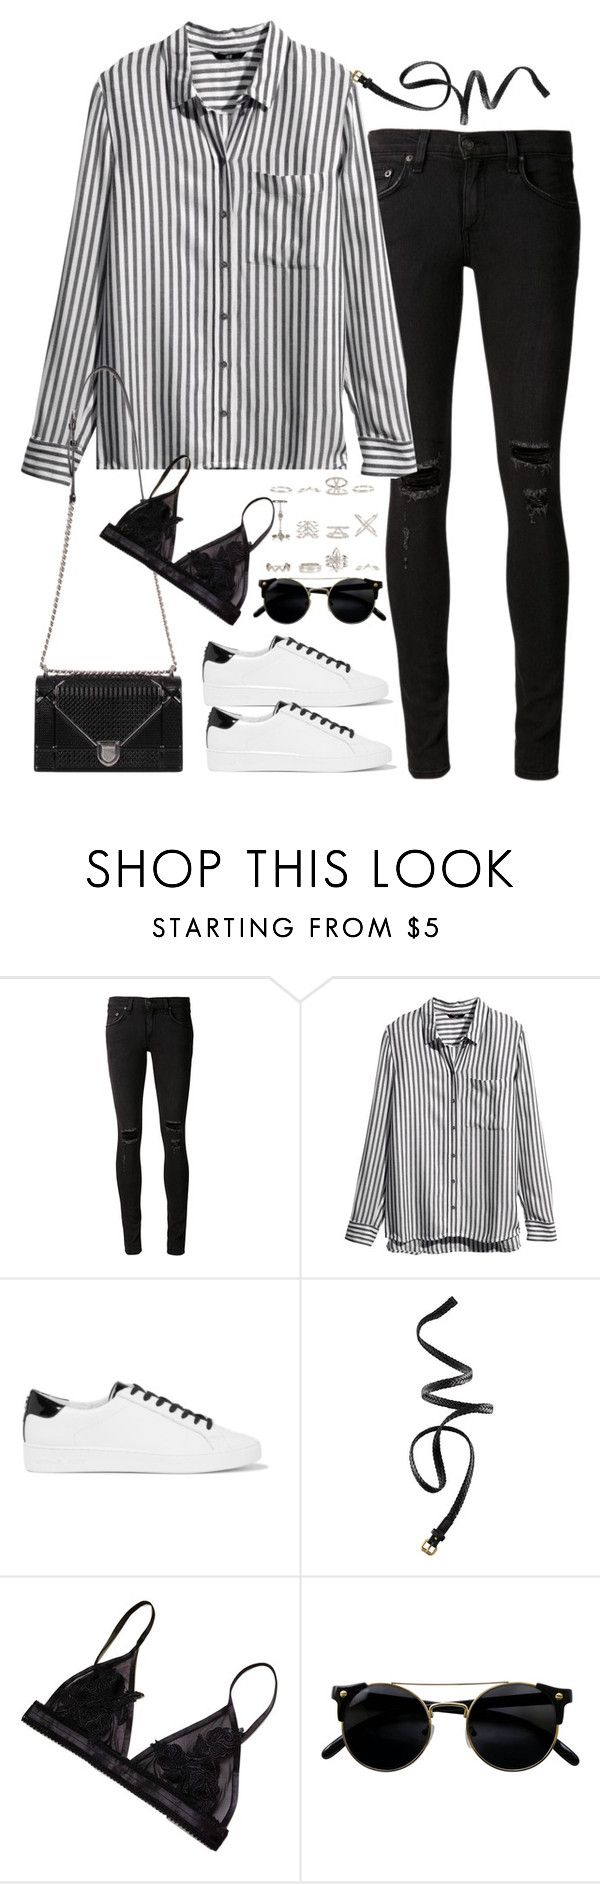 """Untitled#4576"" by fashionnfacts ❤ liked on Polyvore featuring rag & bone/JEAN, H&M, MICHAEL Michael Kors and New Look"